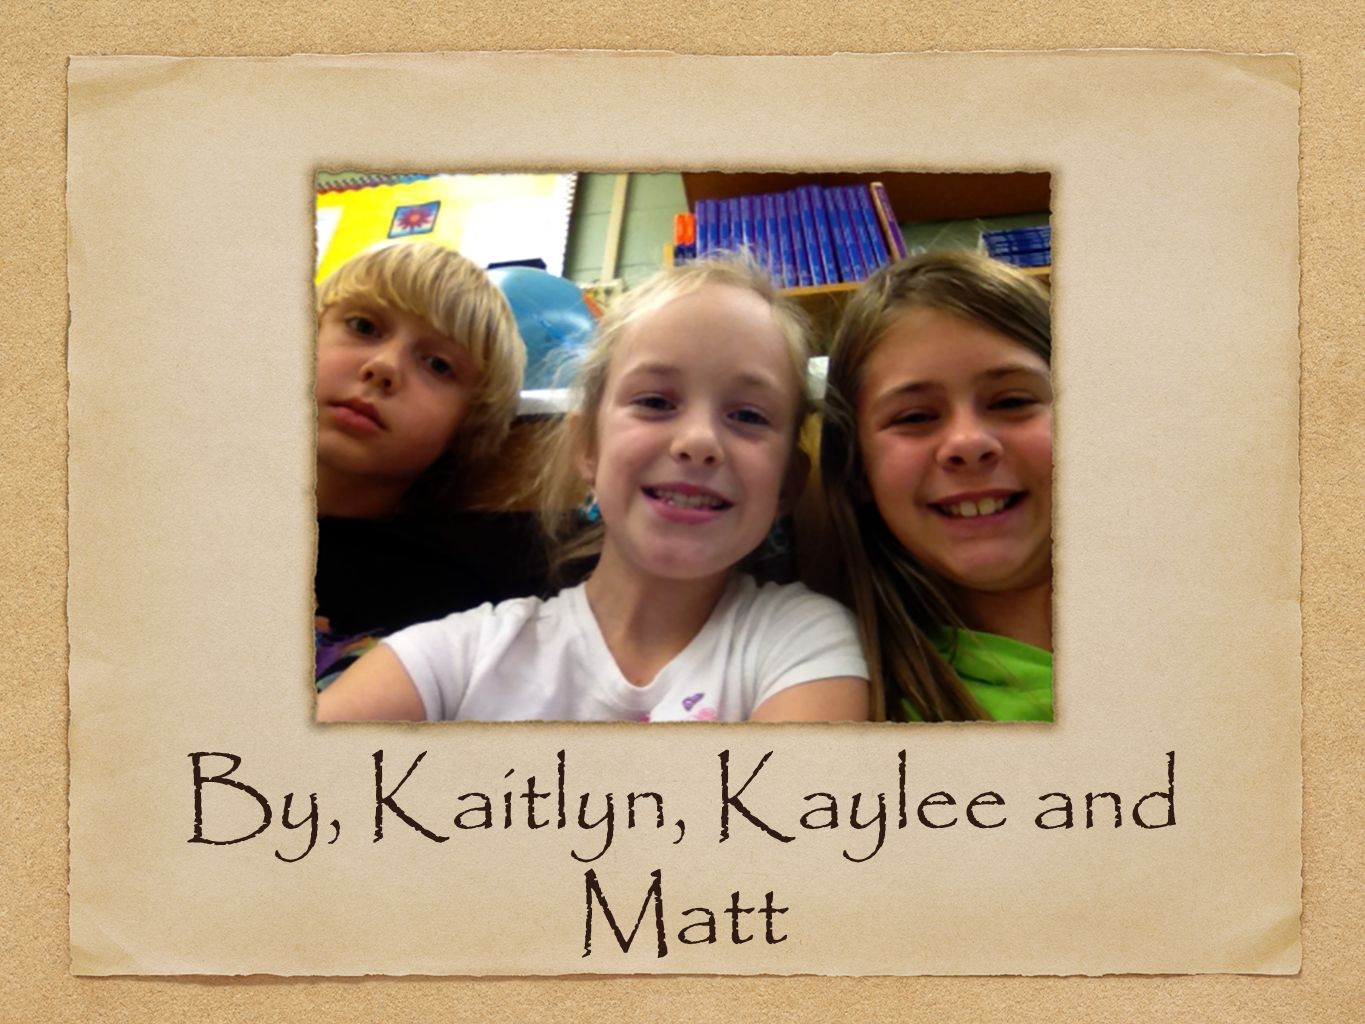 By, Kaitlyn, Kaylee and Matt